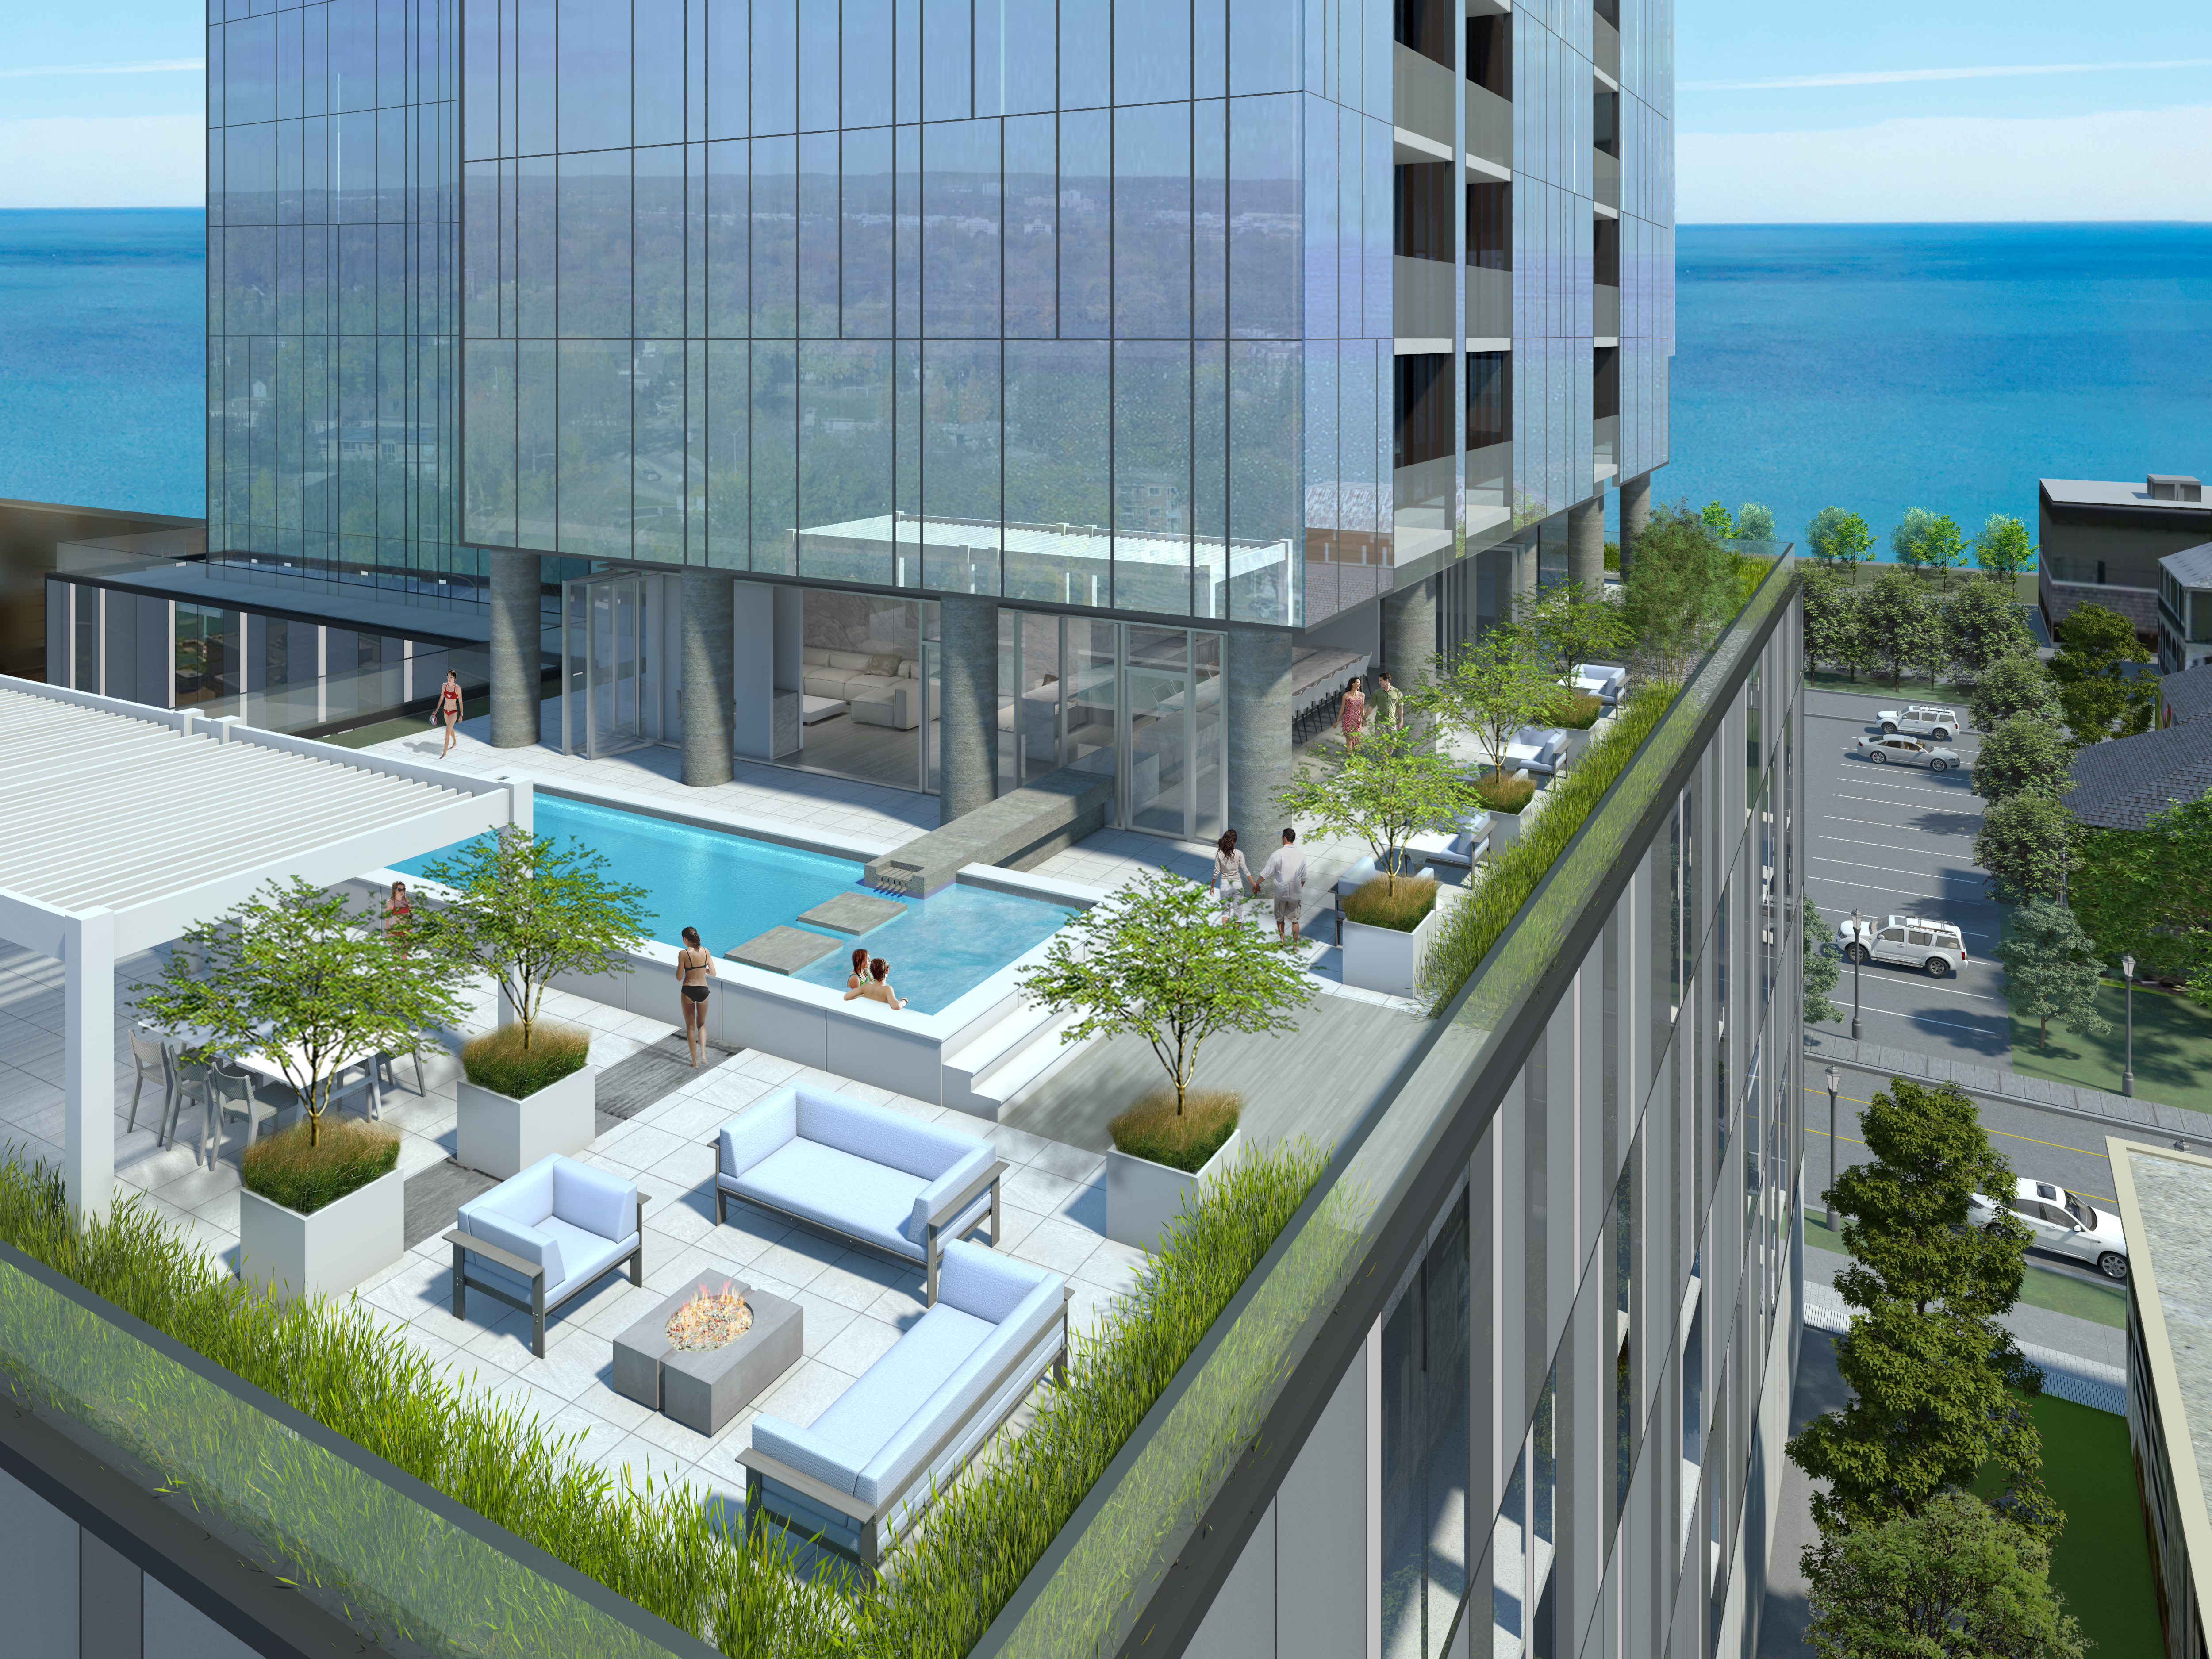 Soak in the everchanging blue vistas and refreshing breezes from a Lounge beside the statement-making pool atop the 4th floor terrace